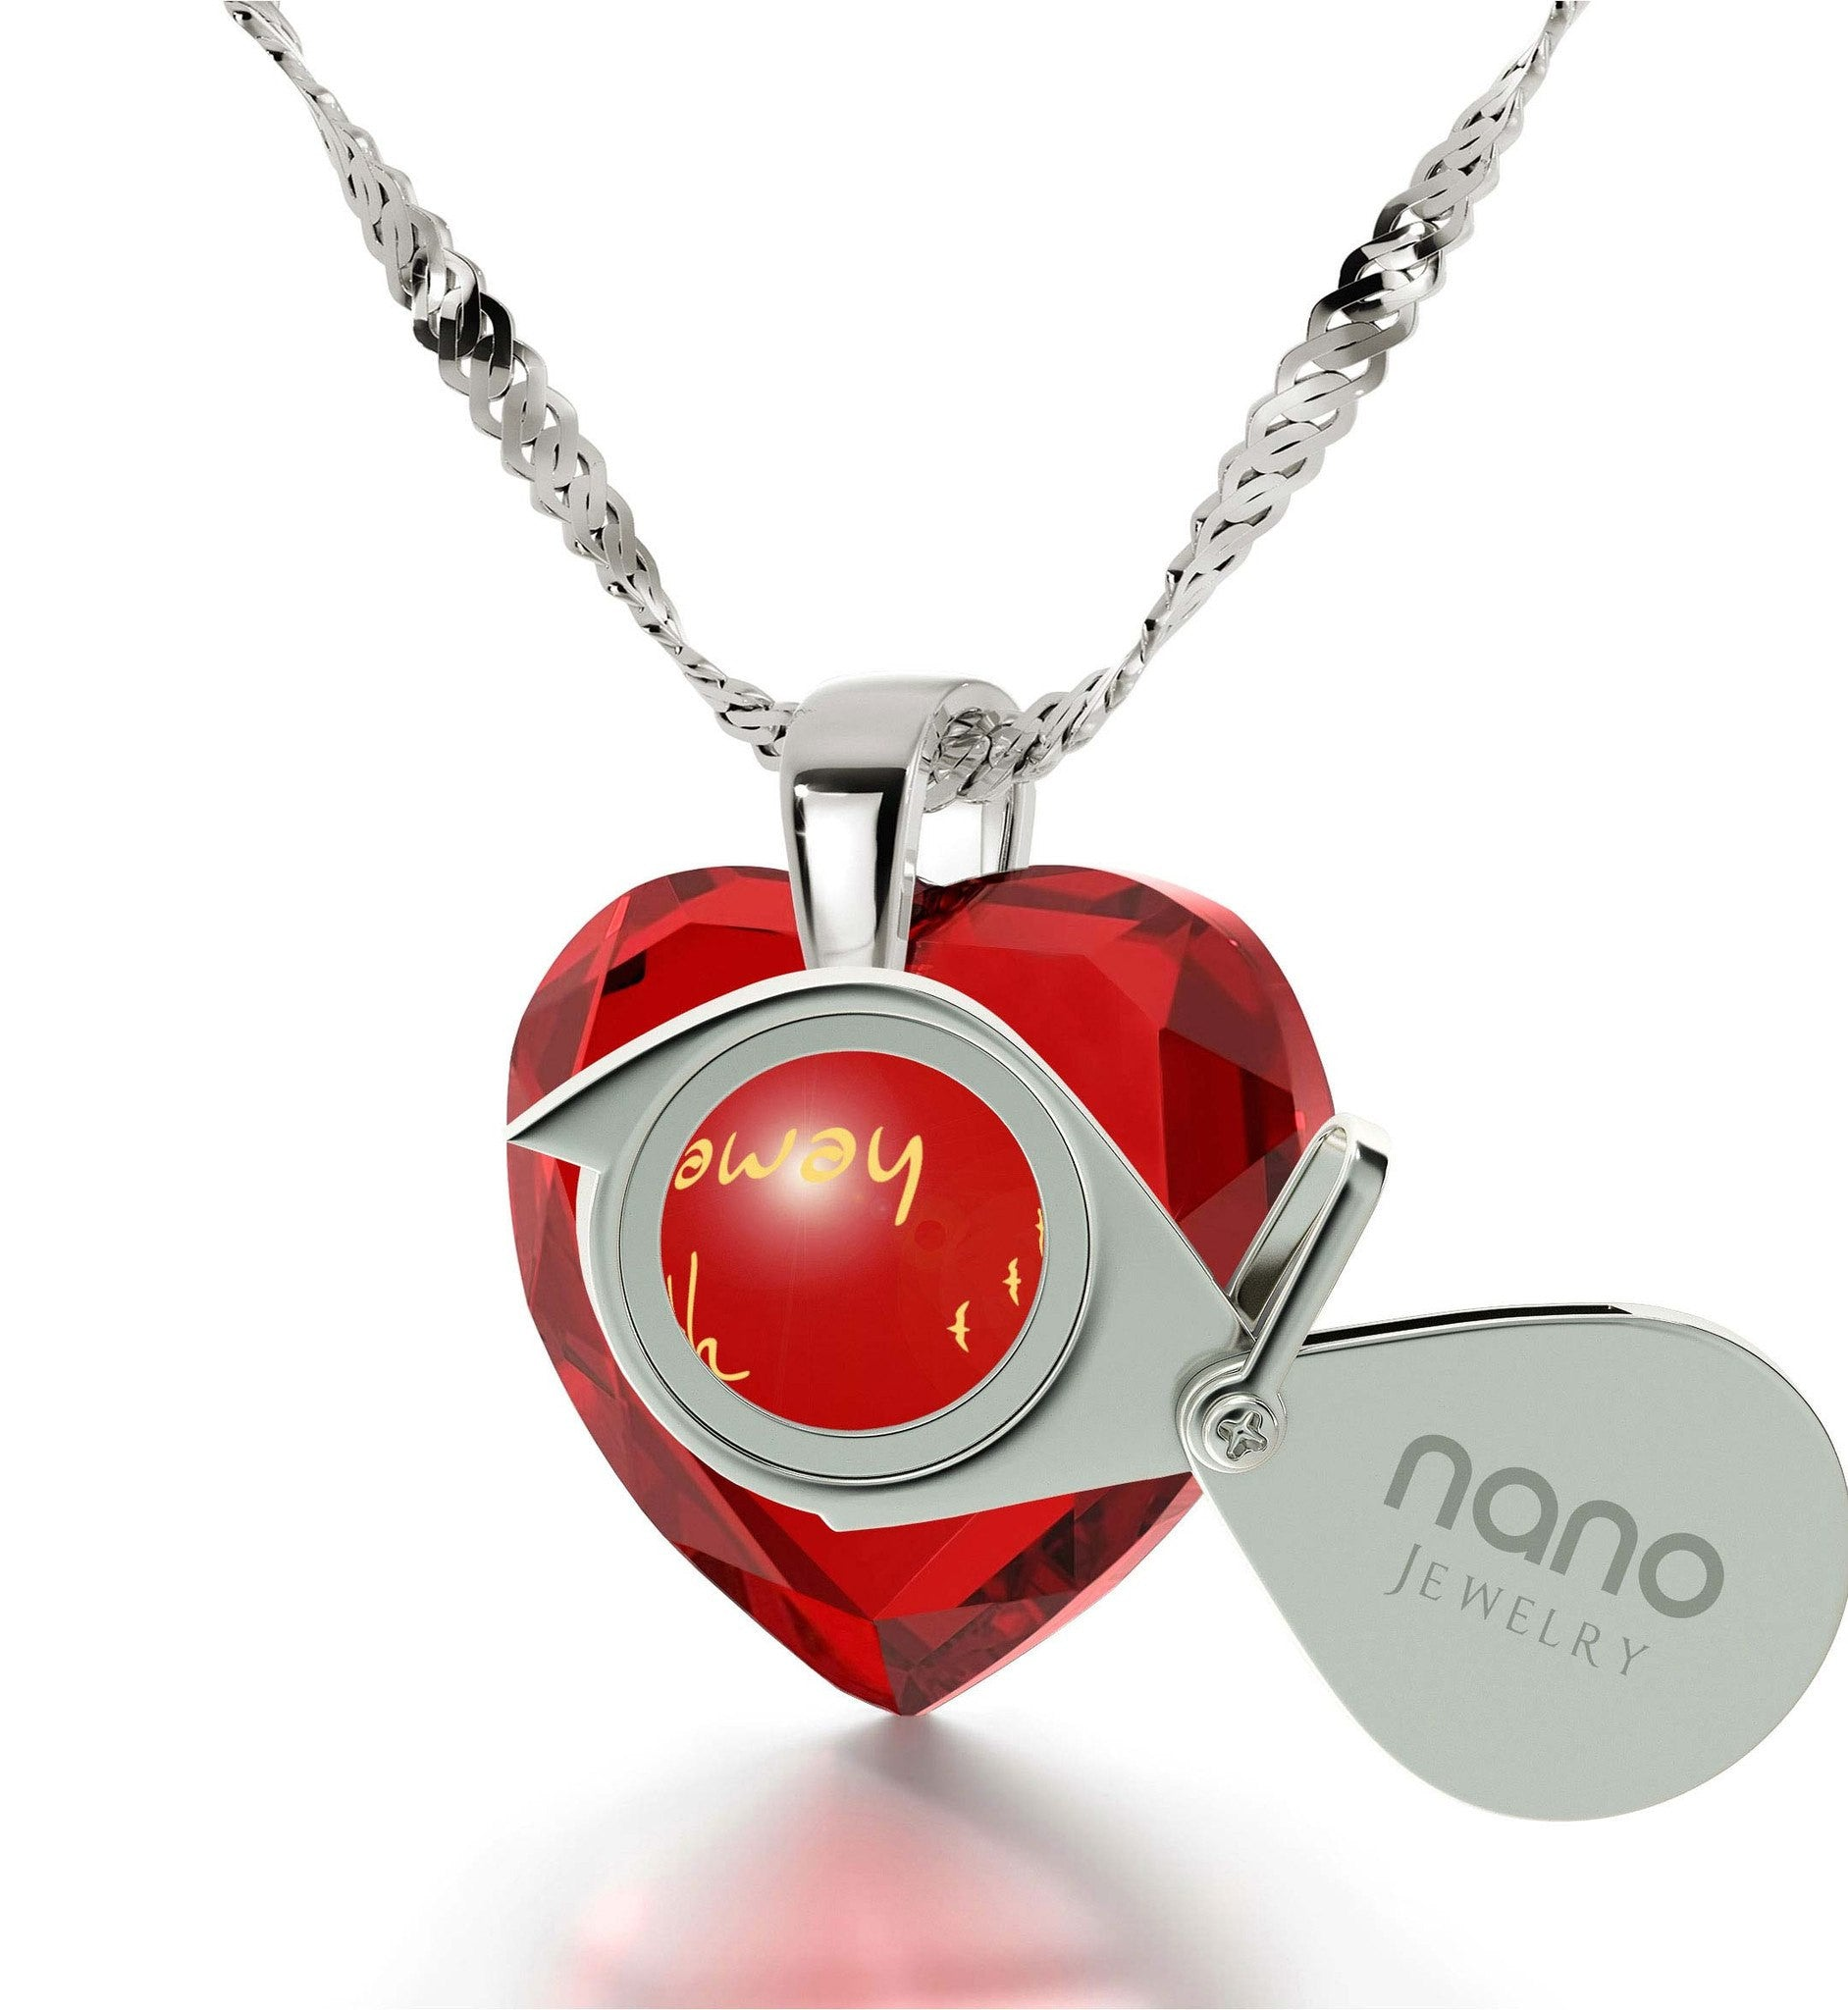 """Best Valentine Gift for Wife, Red Heart Stone Engraved Necklace, Creative Birthday Ideas for Girlfriend"""